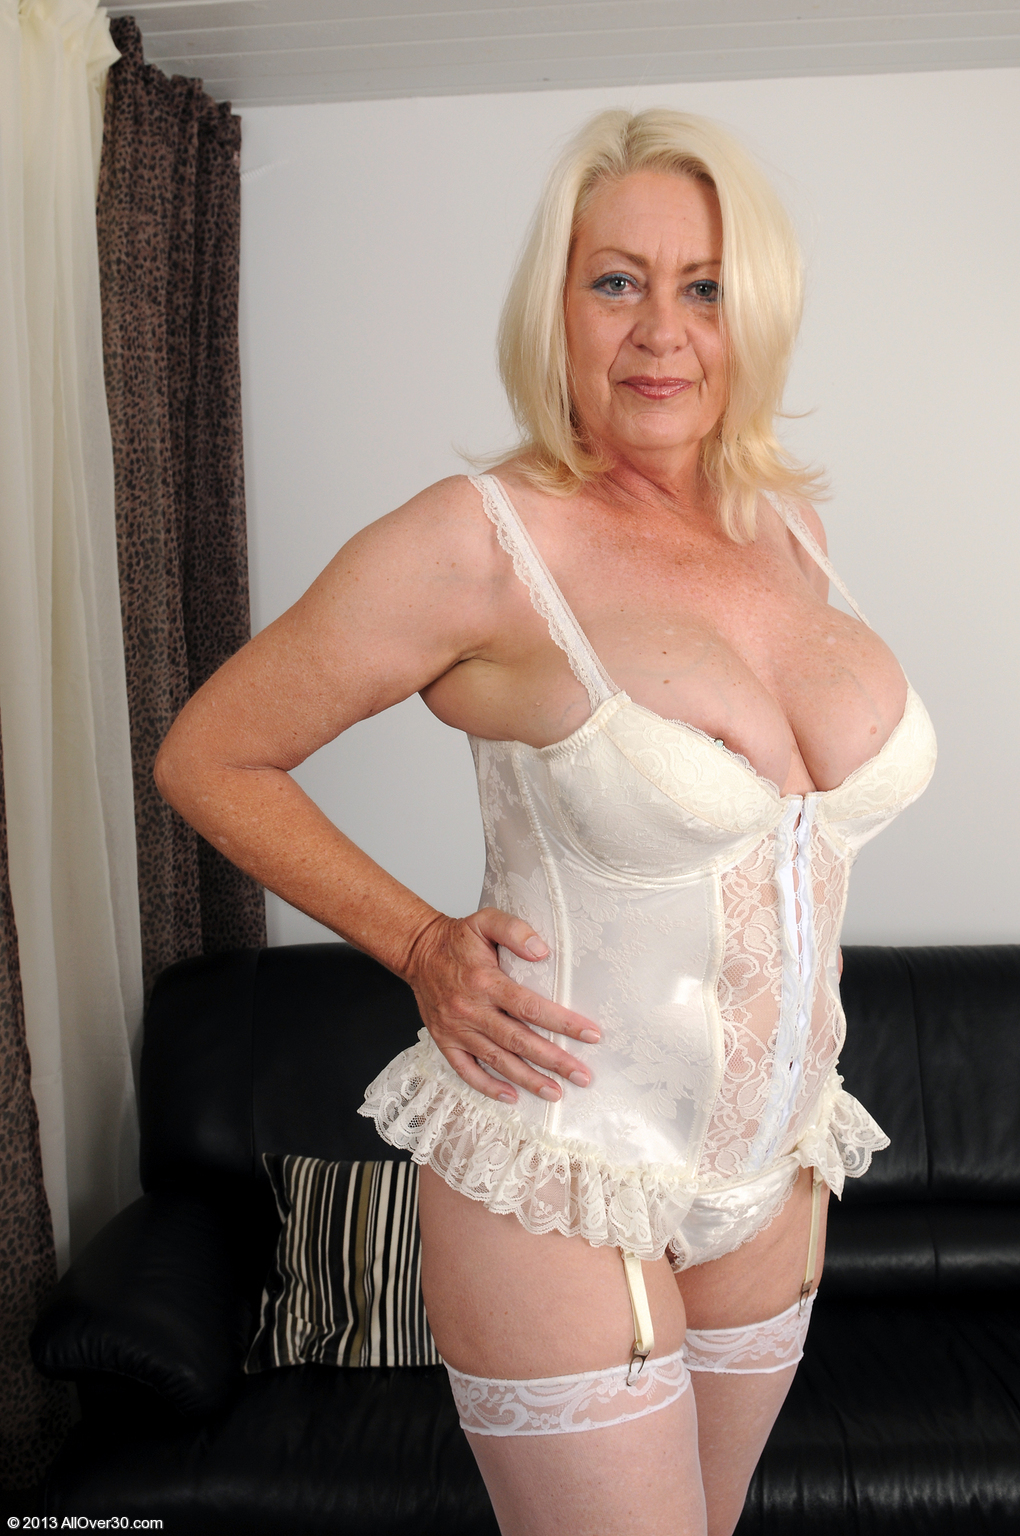 plump www escort london